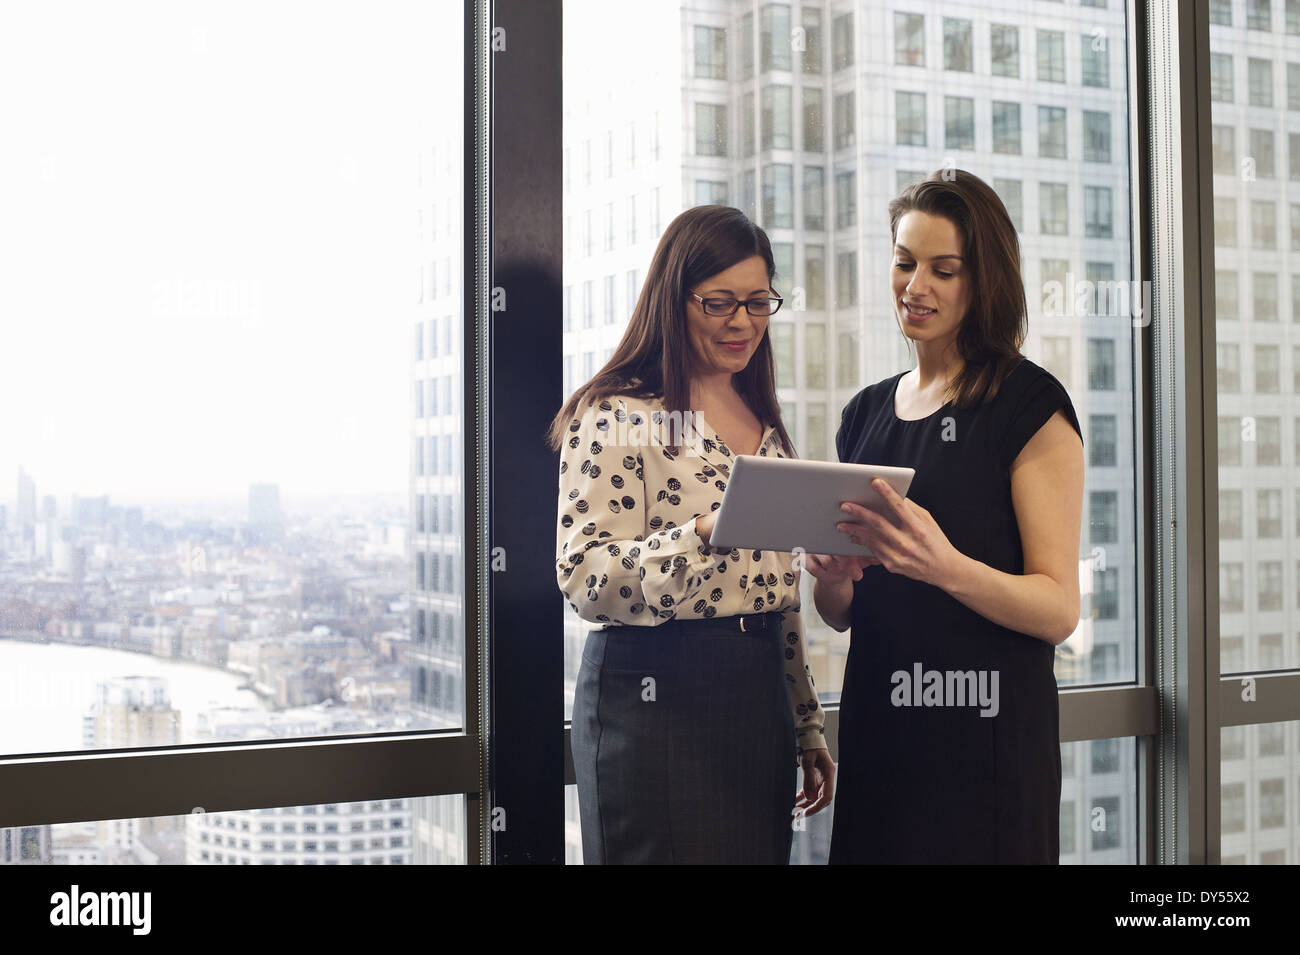 Female business colleagues looking at digital tablet in office - Stock Image